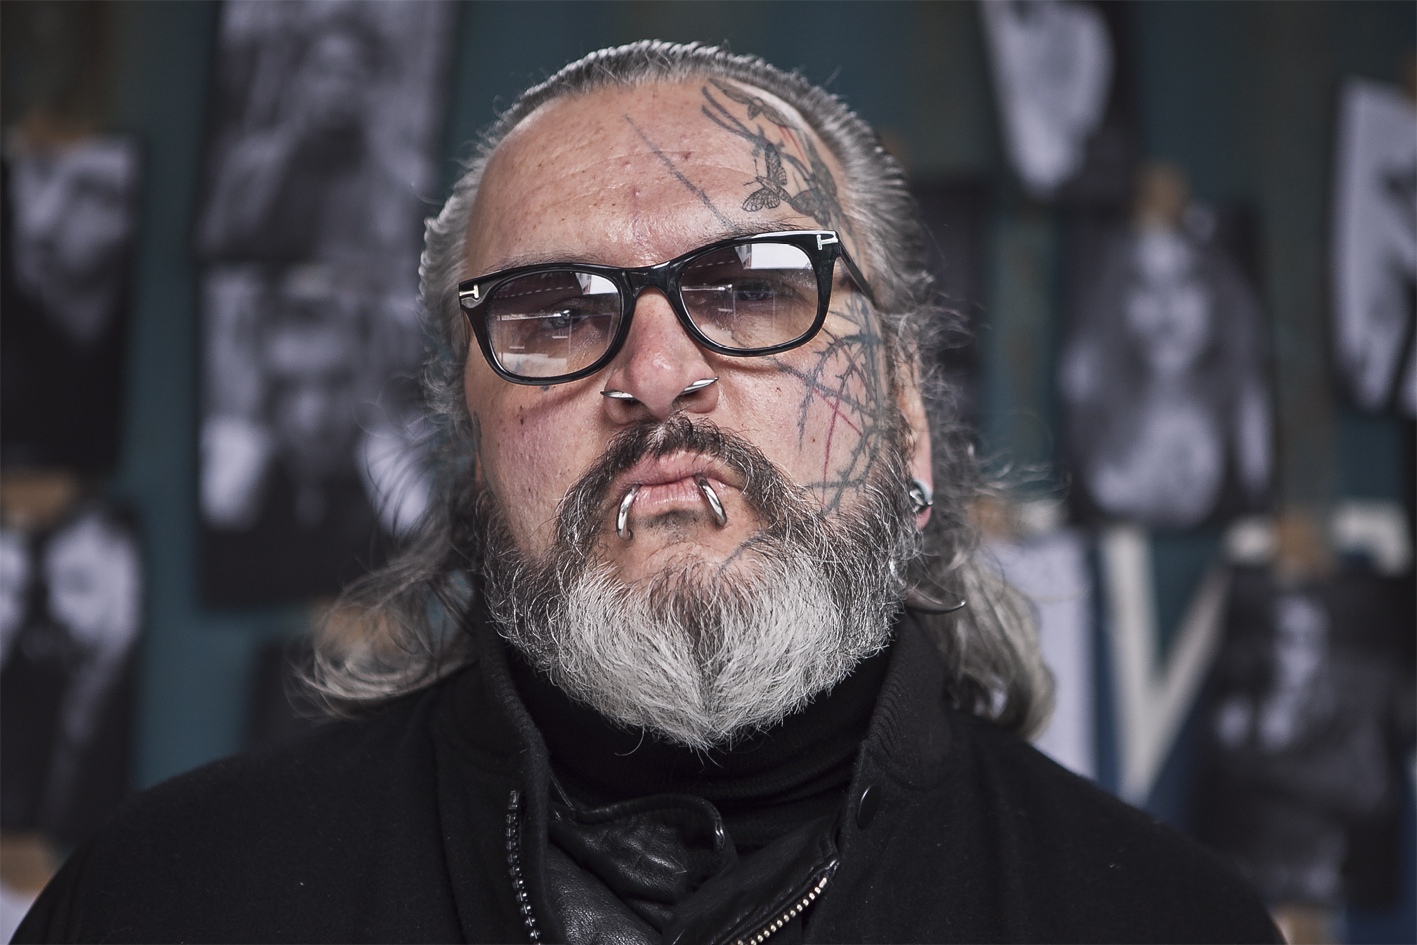 Sven Marquardt - Berghain's infamous head of security